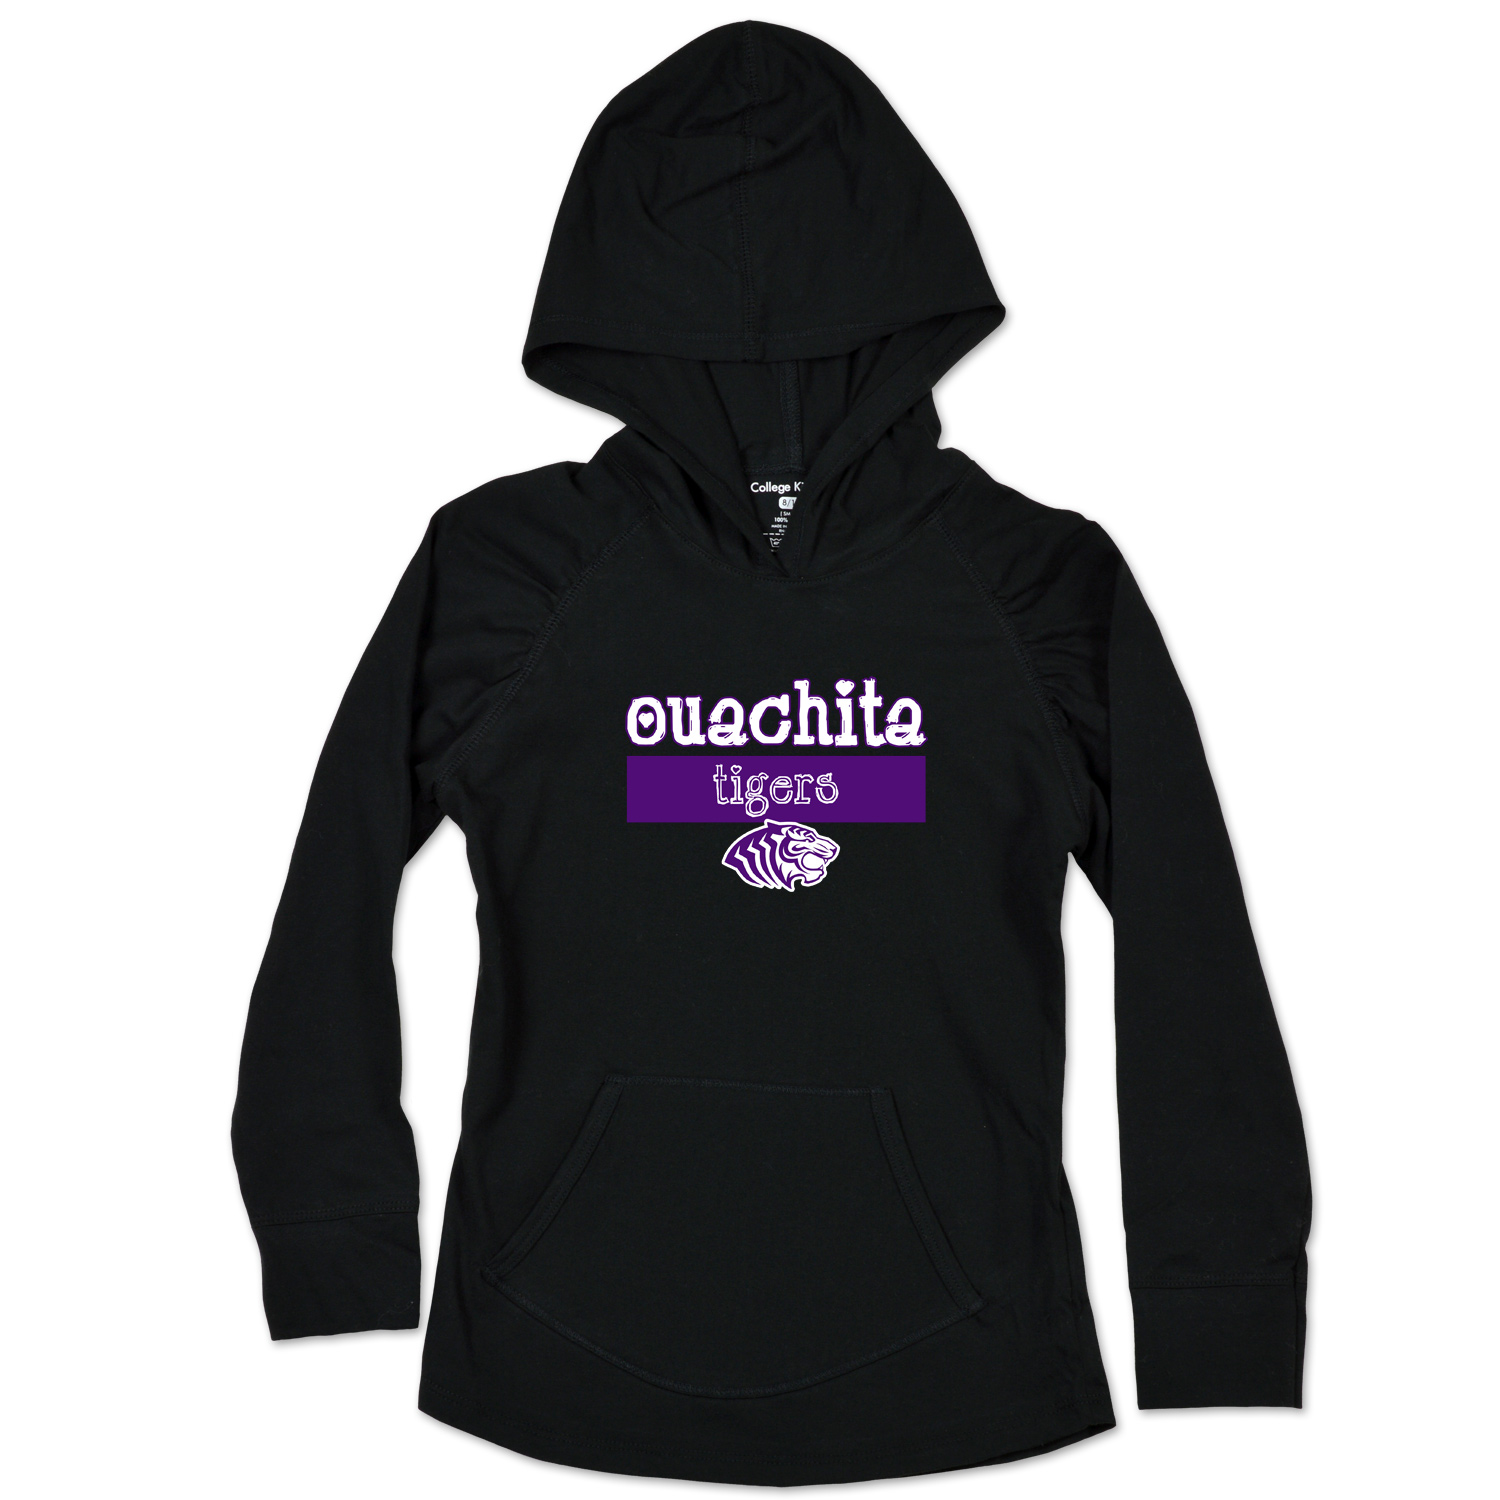 OUACHITA TIGERS YOUTH HOODED PULLOVER